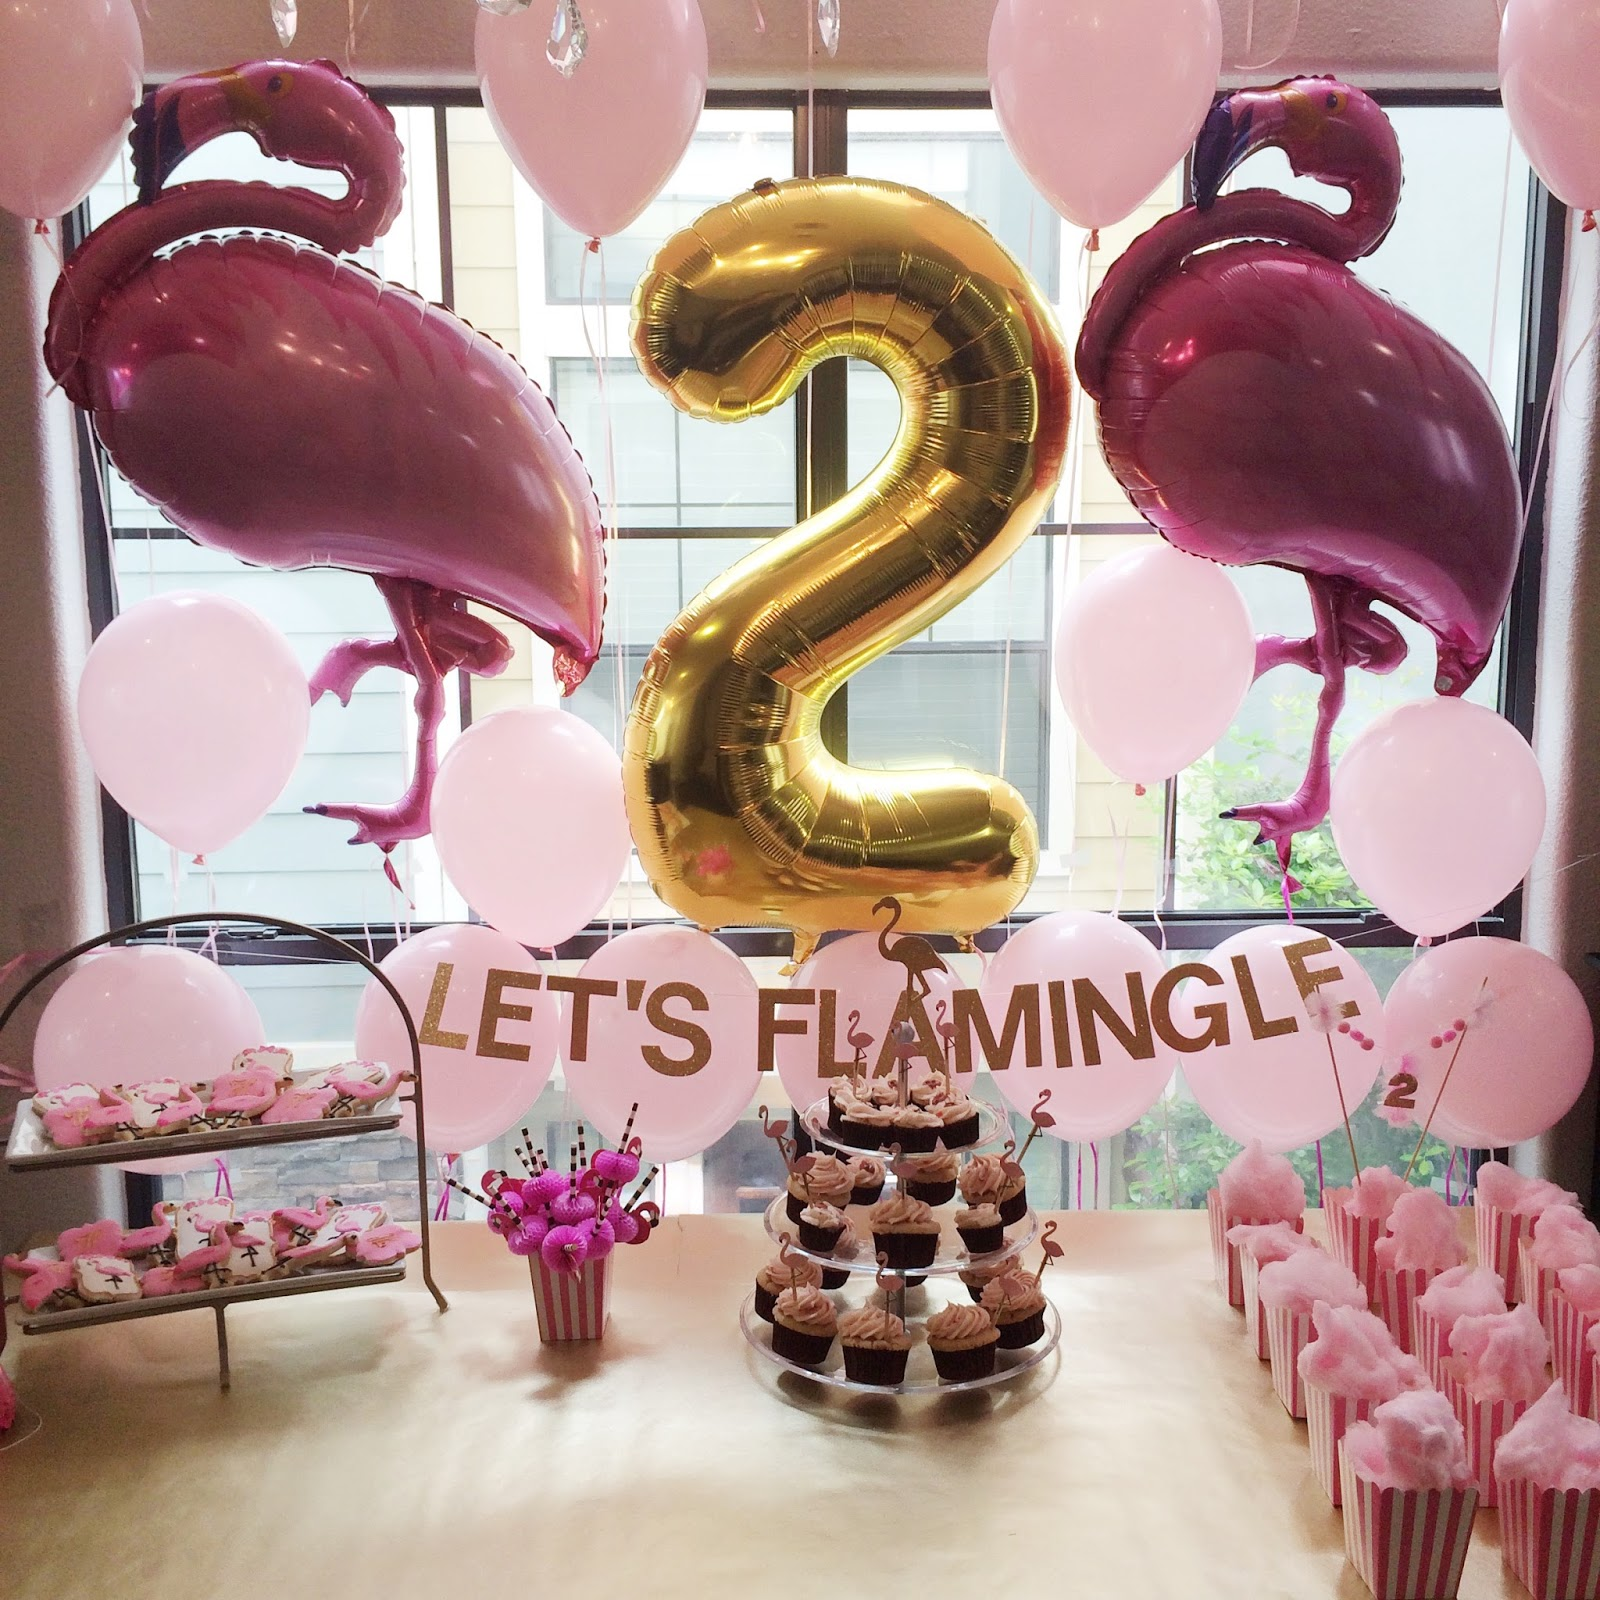 Harper's Second Birthday Party: Let's Flamingle